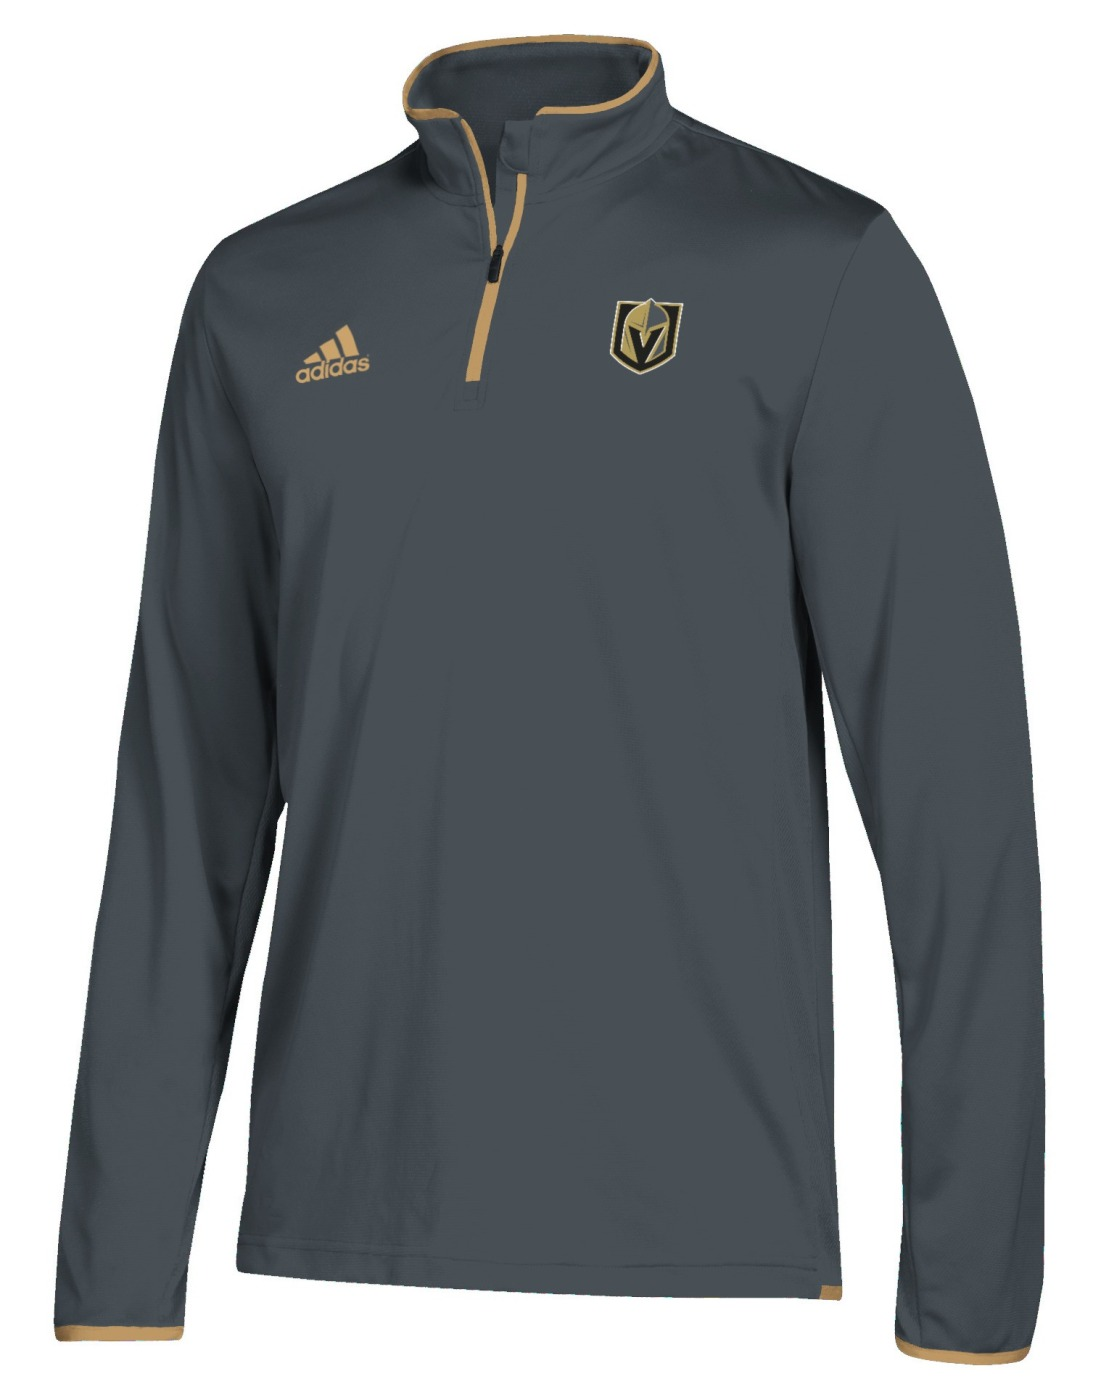 Las Vegas Golden Knights Adidas NHL Men's 2018 Authentic Pro 1/4 Zip Wind Shirt